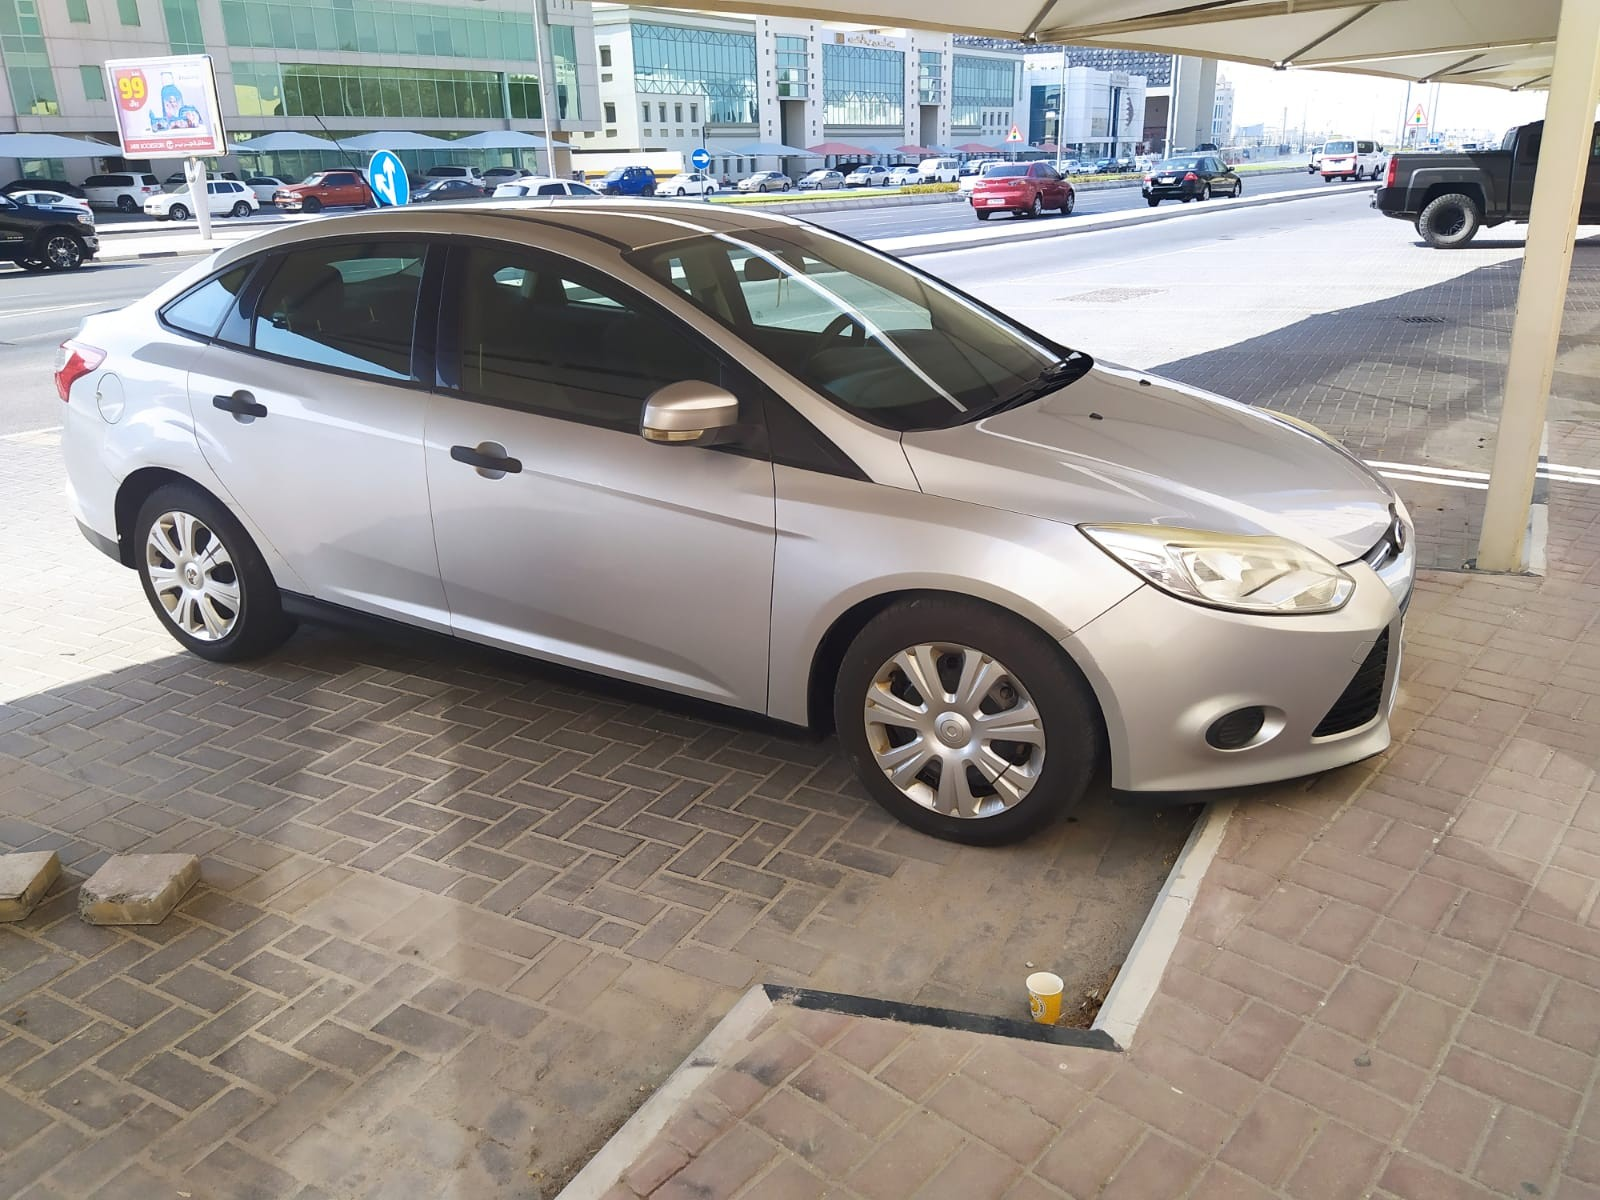 Ford Focus 2013 Model For Sale